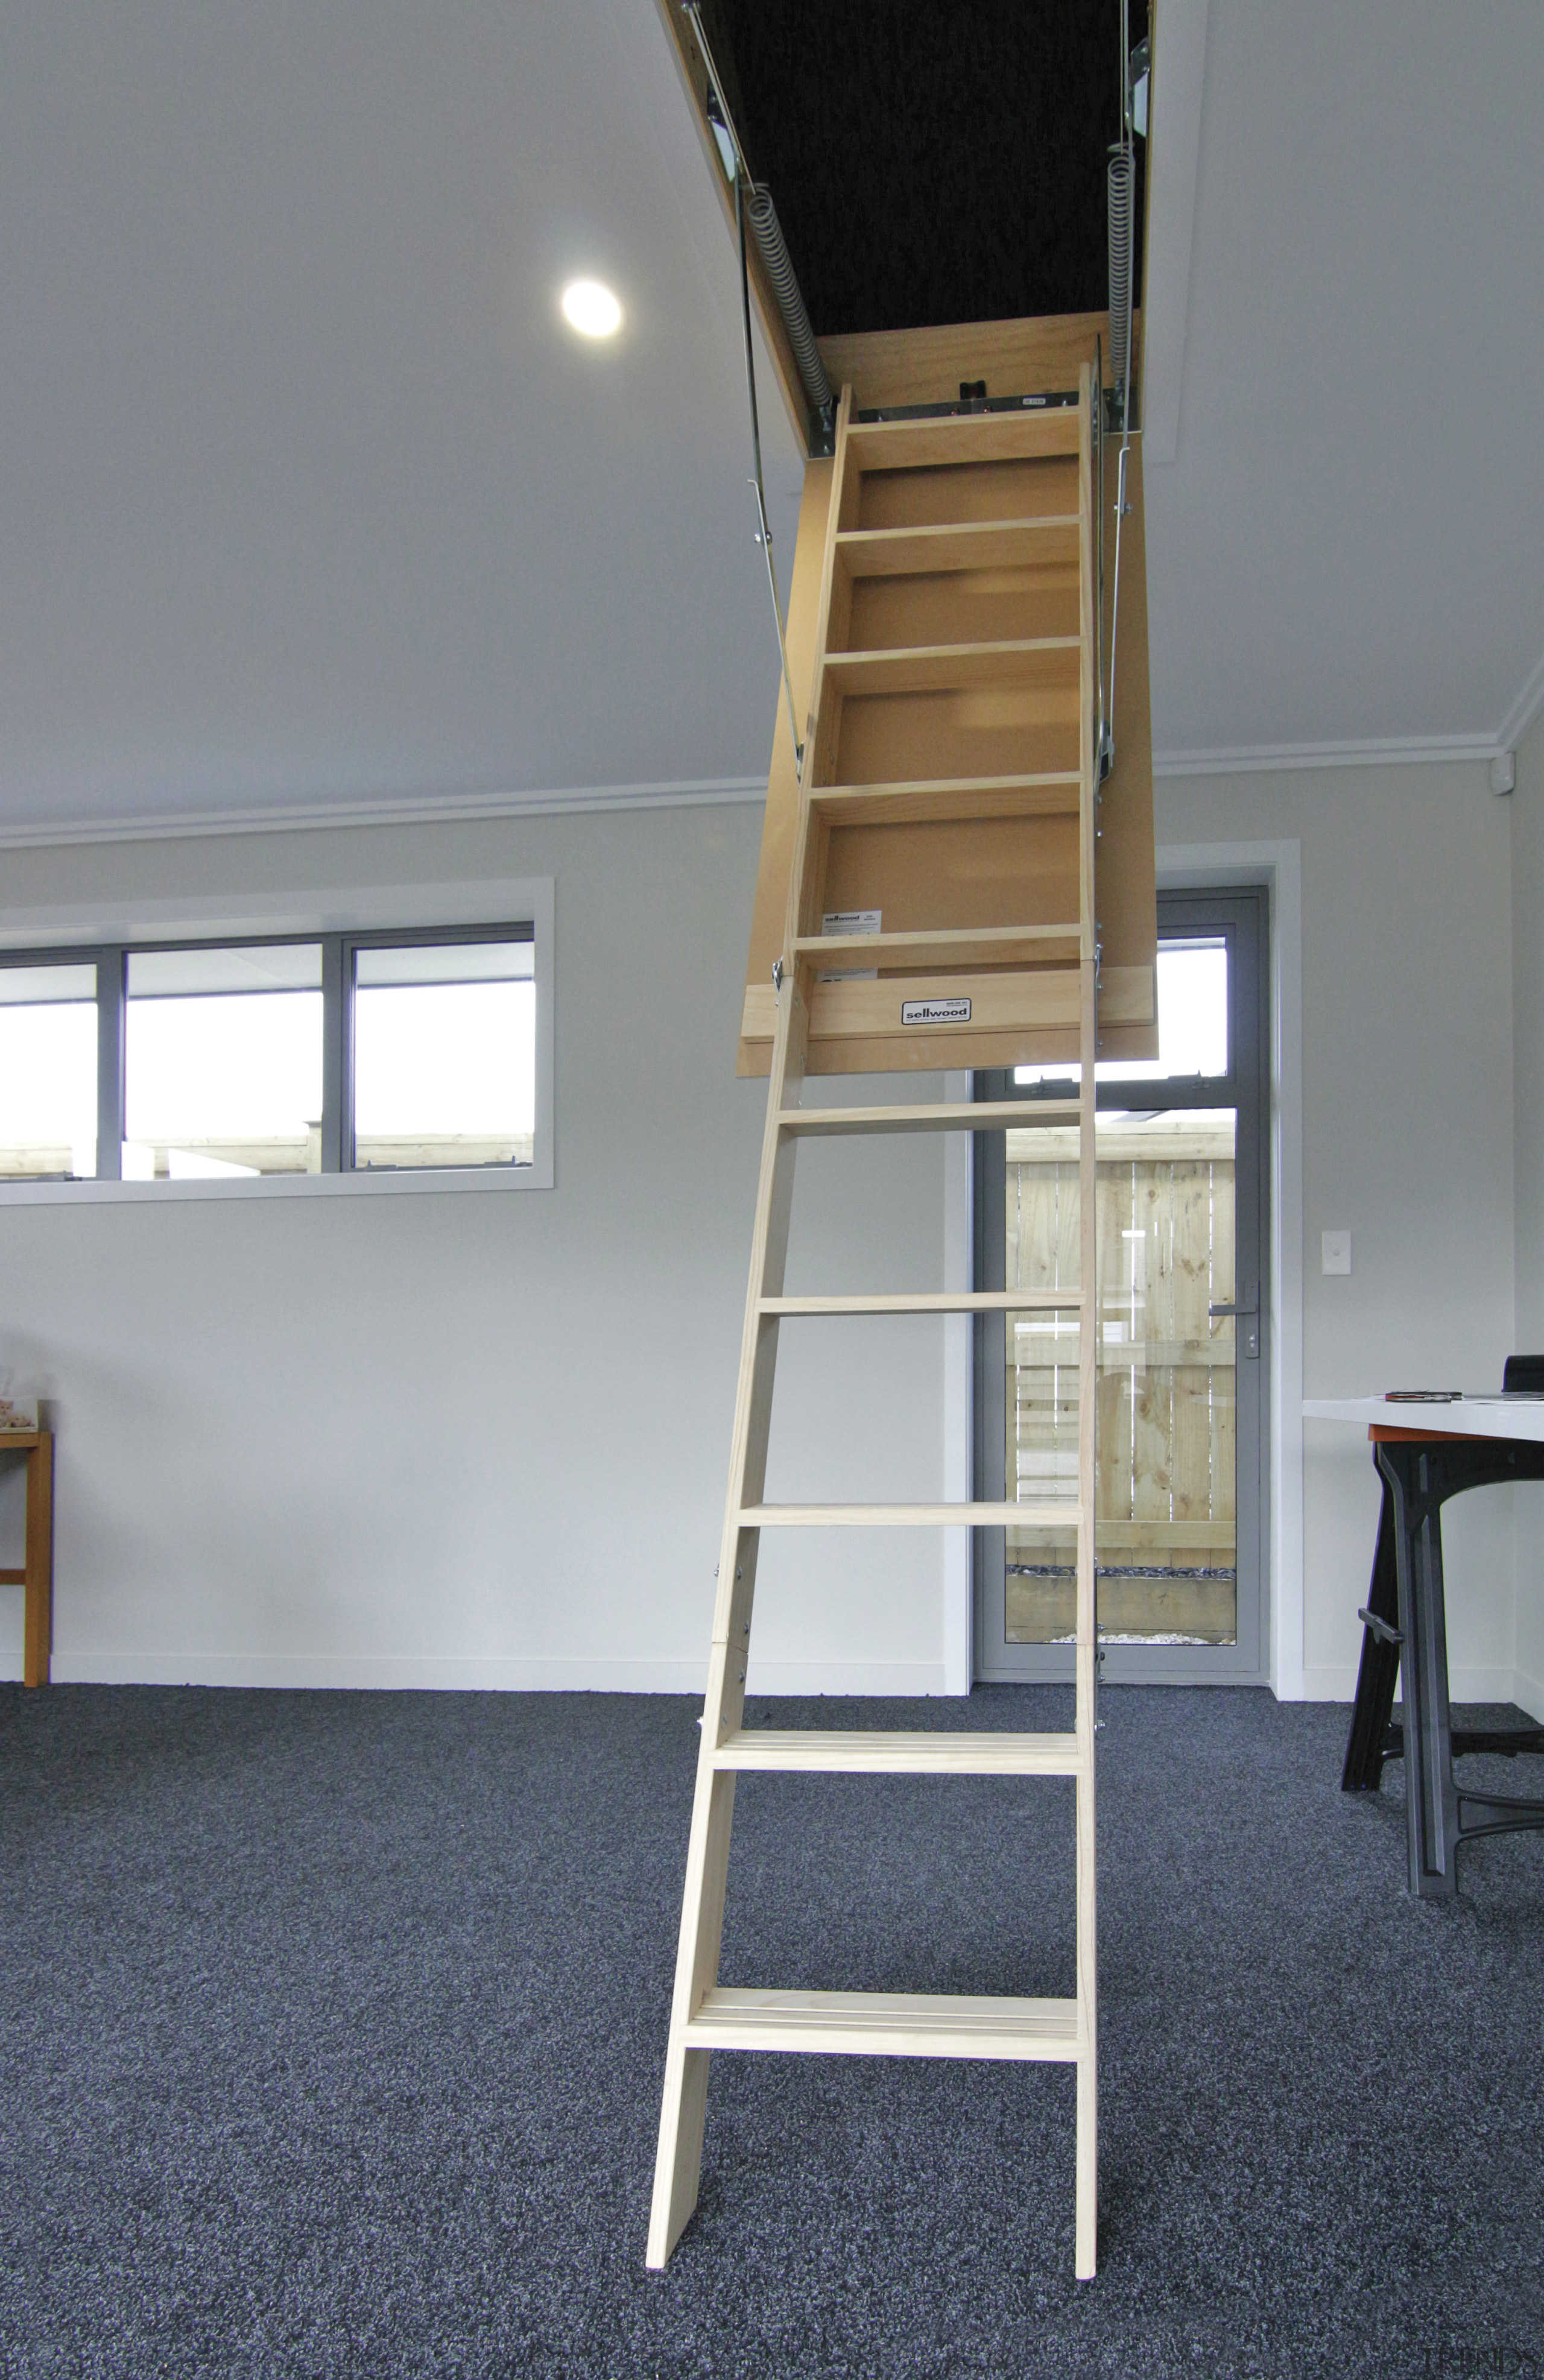 Dedicated storage is a feature of this Fowler ladder, gray